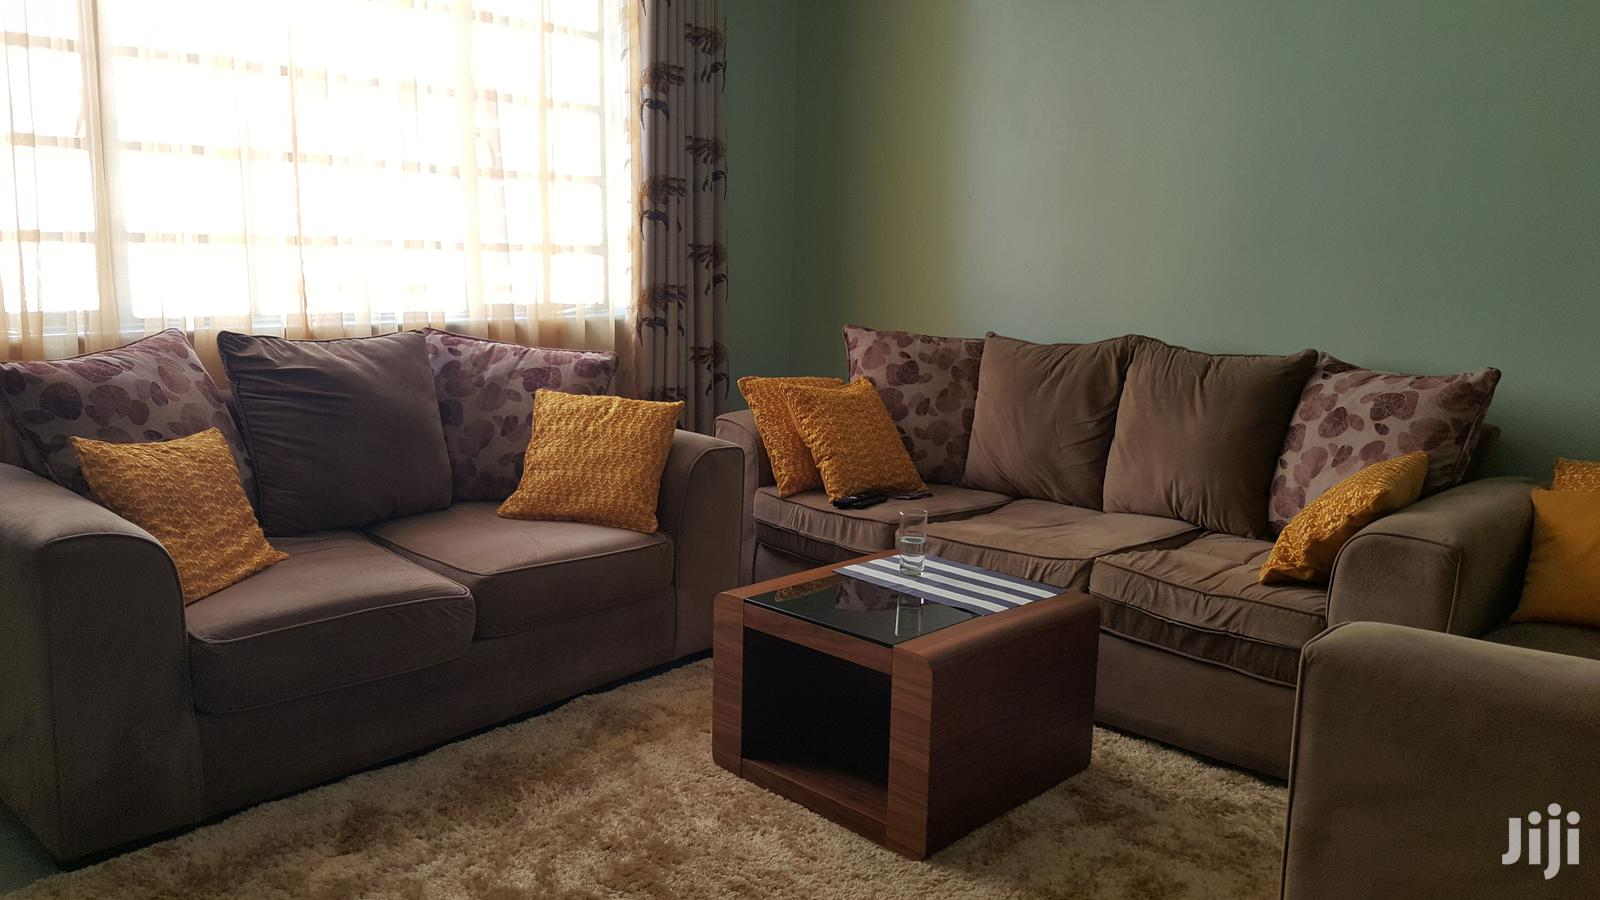 Perfect Investment Opportunity . | Houses & Apartments For Sale for sale in Syokimau/Mulolongo, Machakos, Kenya